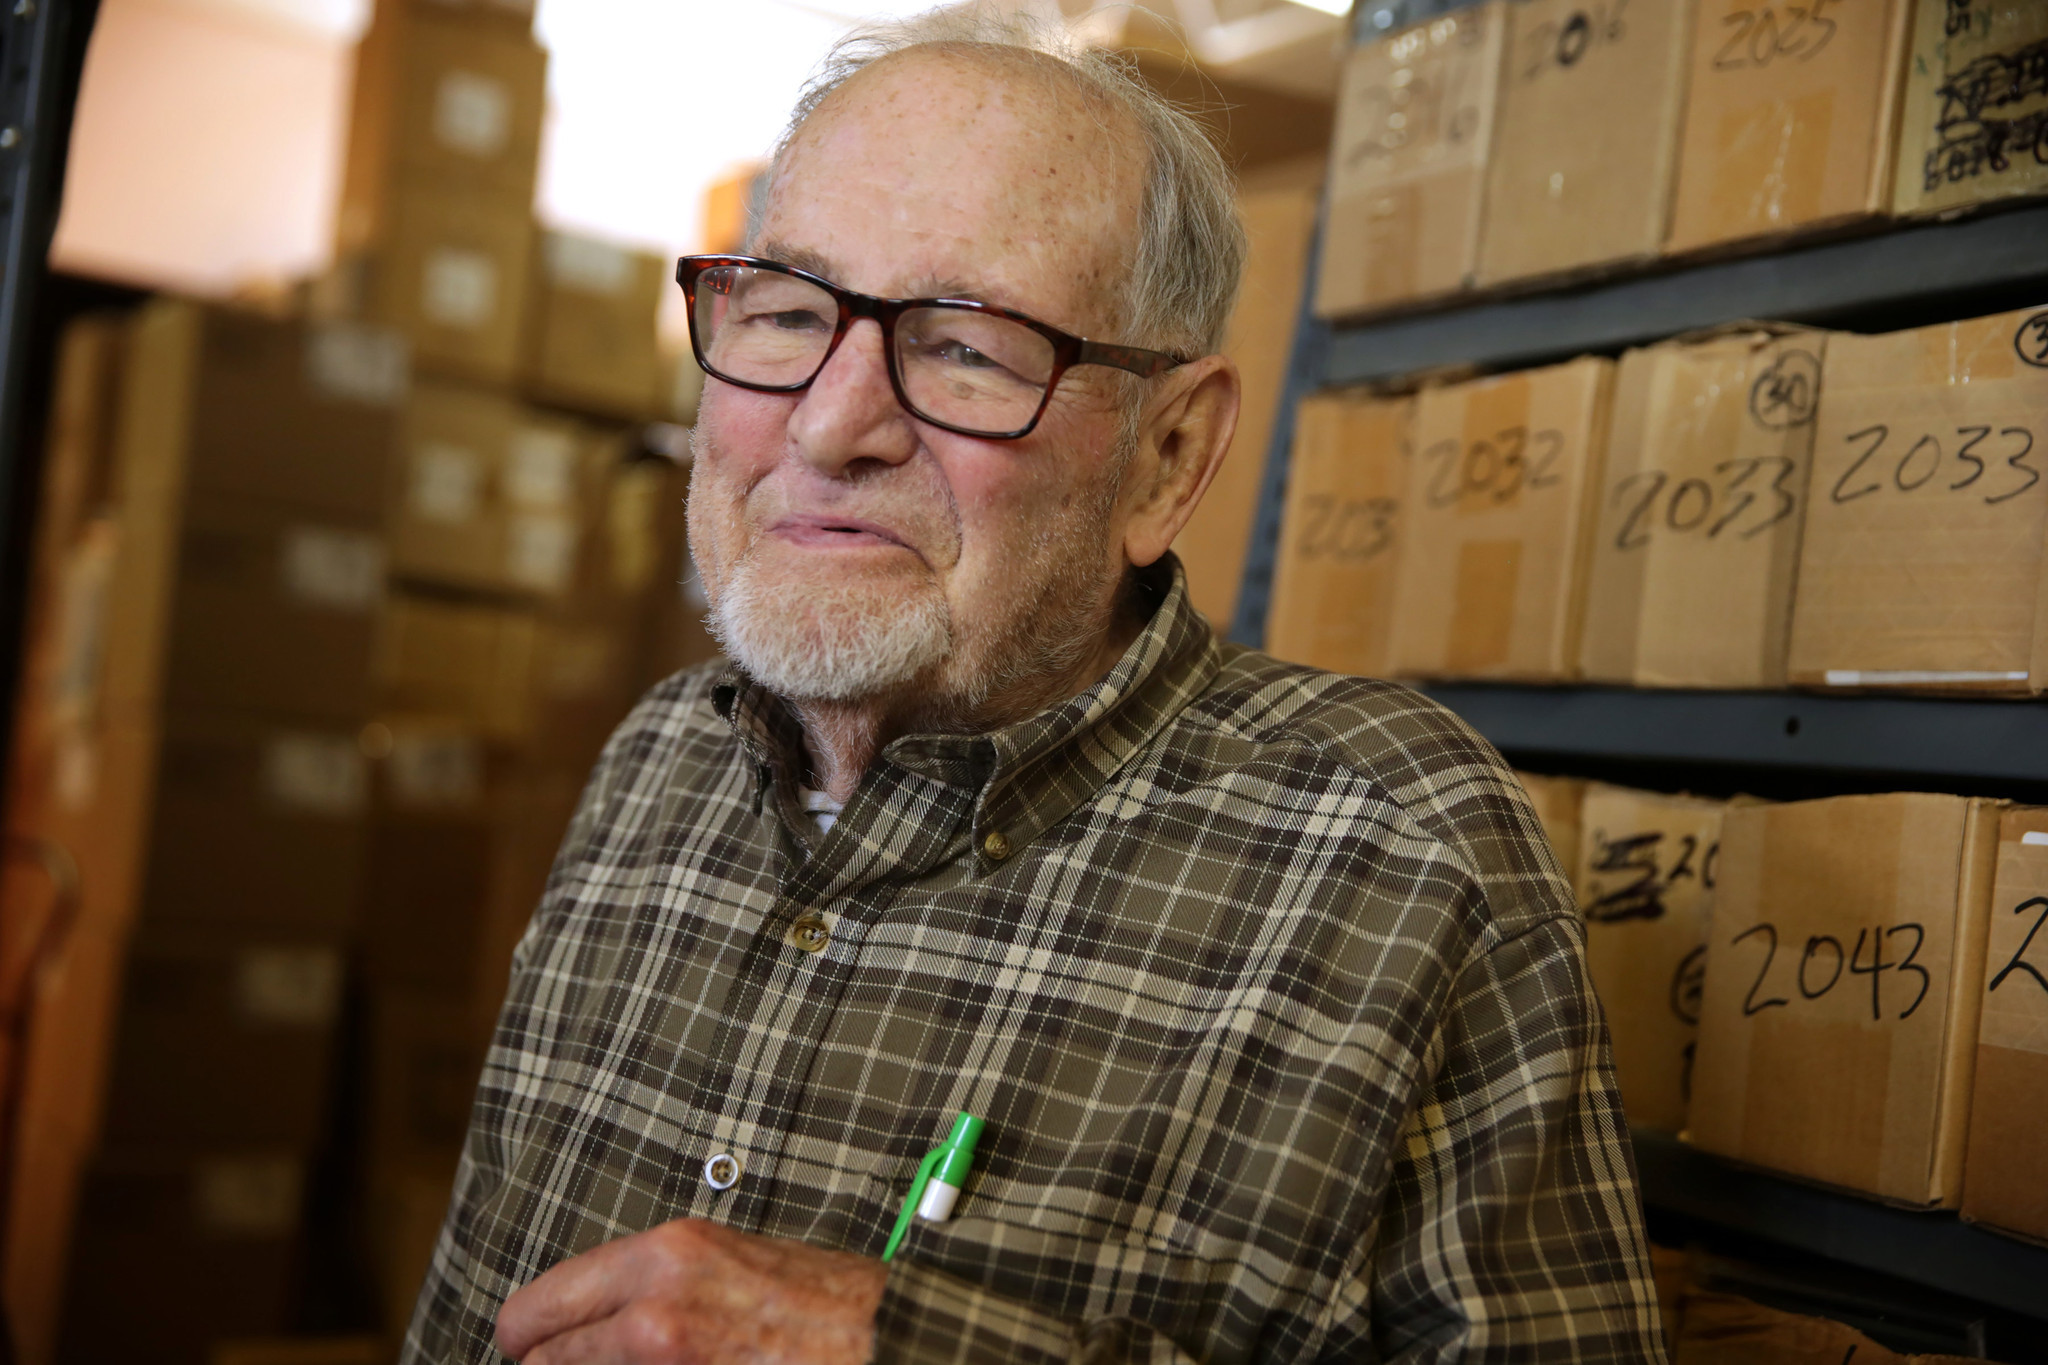 At 83, Bob Koester opens his newest record store (and how it compares to Jazz Record Mart)